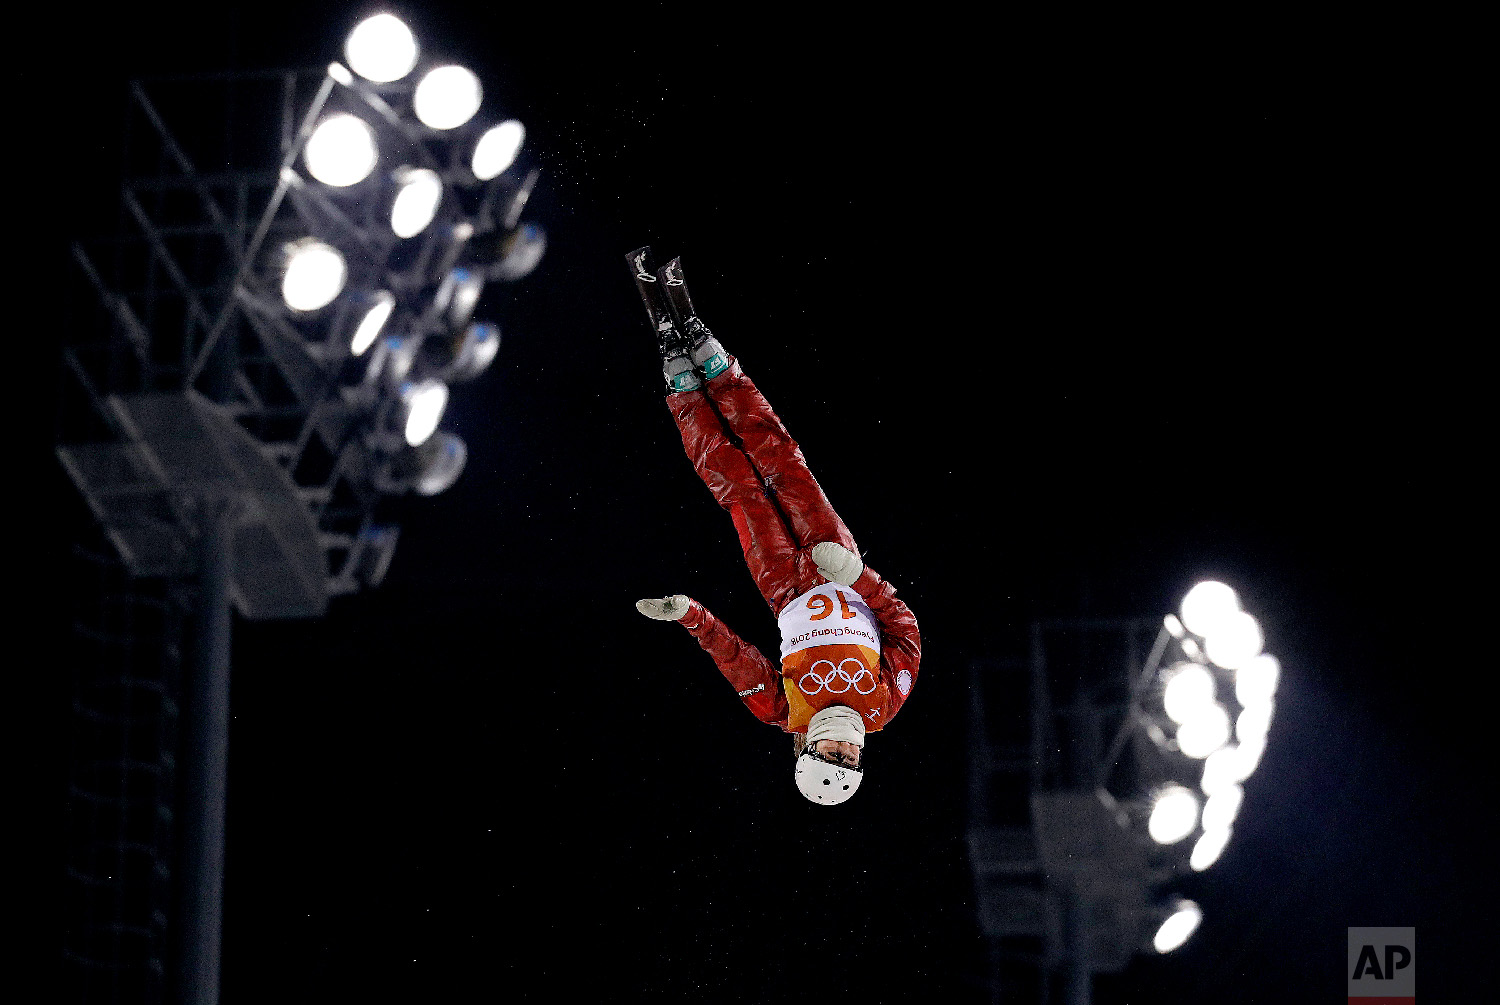 Russian athlete LiubovNikitina jumps during the women's freestyle aerial final at Phoenix Snow Park at the 2018 Winter Olympics in Pyeongchang, South Korea, Friday, Feb. 16, 2018. (AP Photo/Kin Cheung)